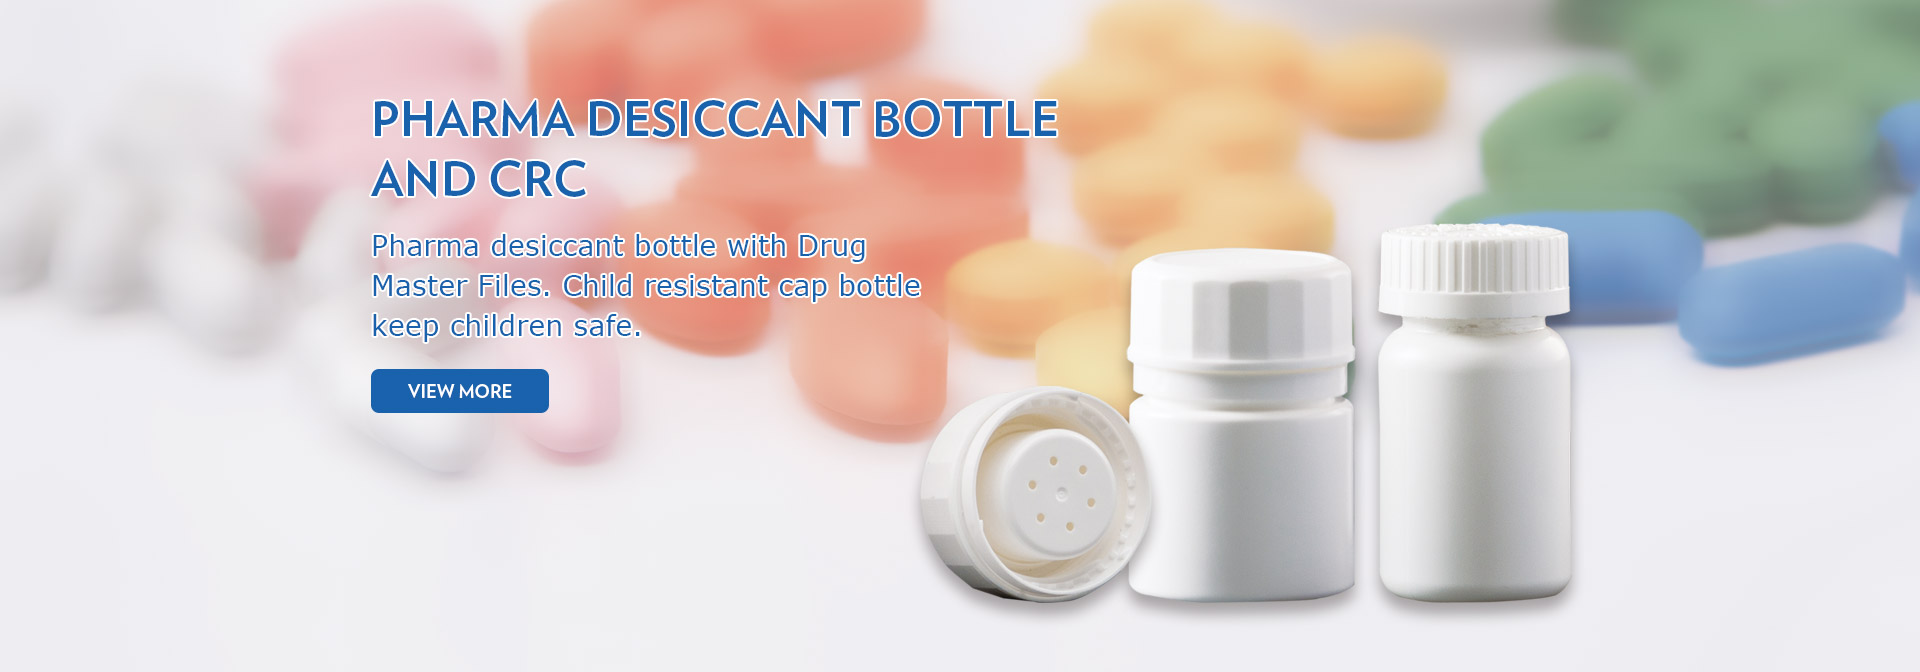 Pharma Desiccant Bottle and CRC